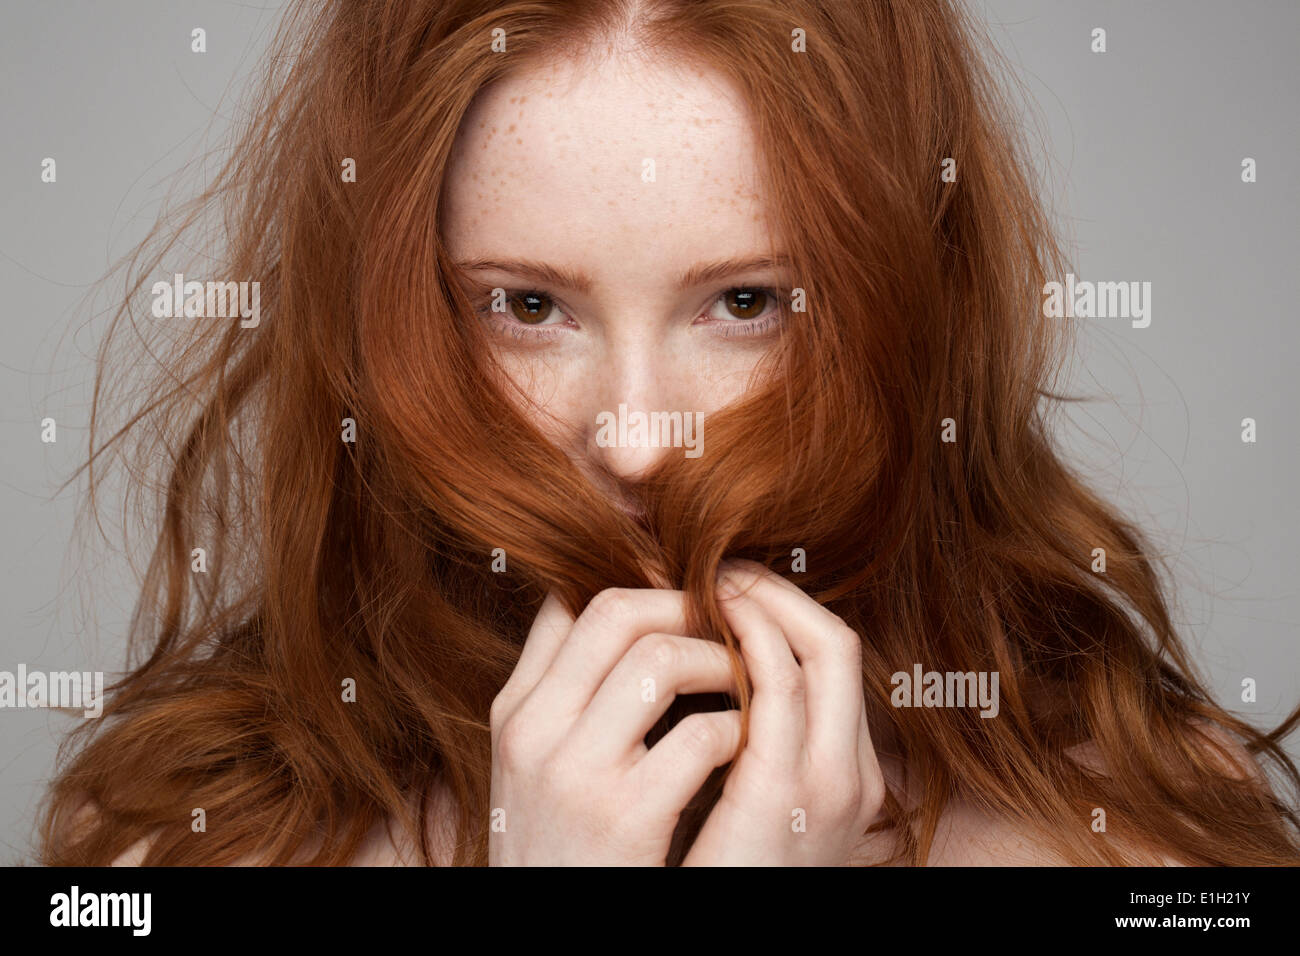 Portrait of young woman, hands in hair Stock Photo